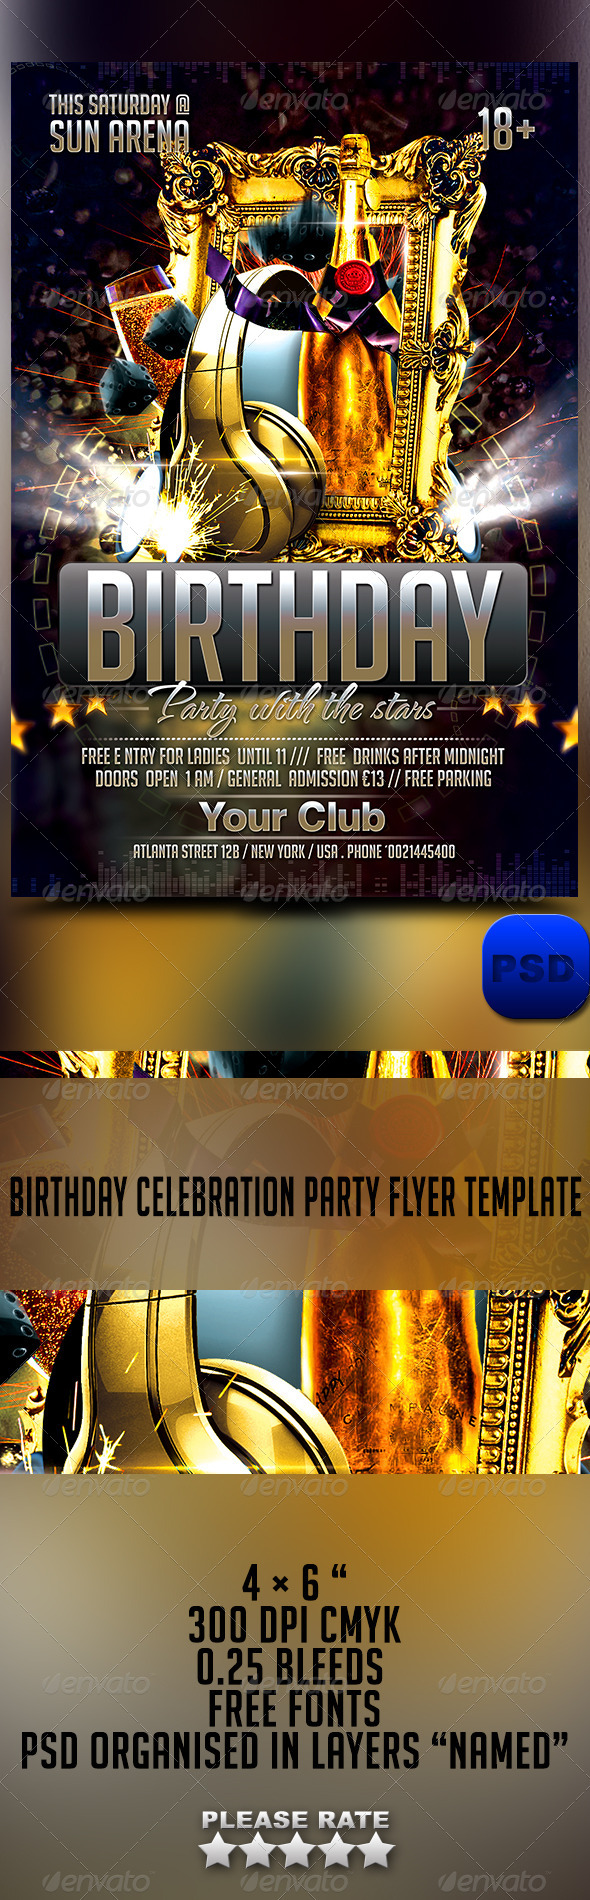 Birthday Celebration Party Flyer Template - Events Flyers